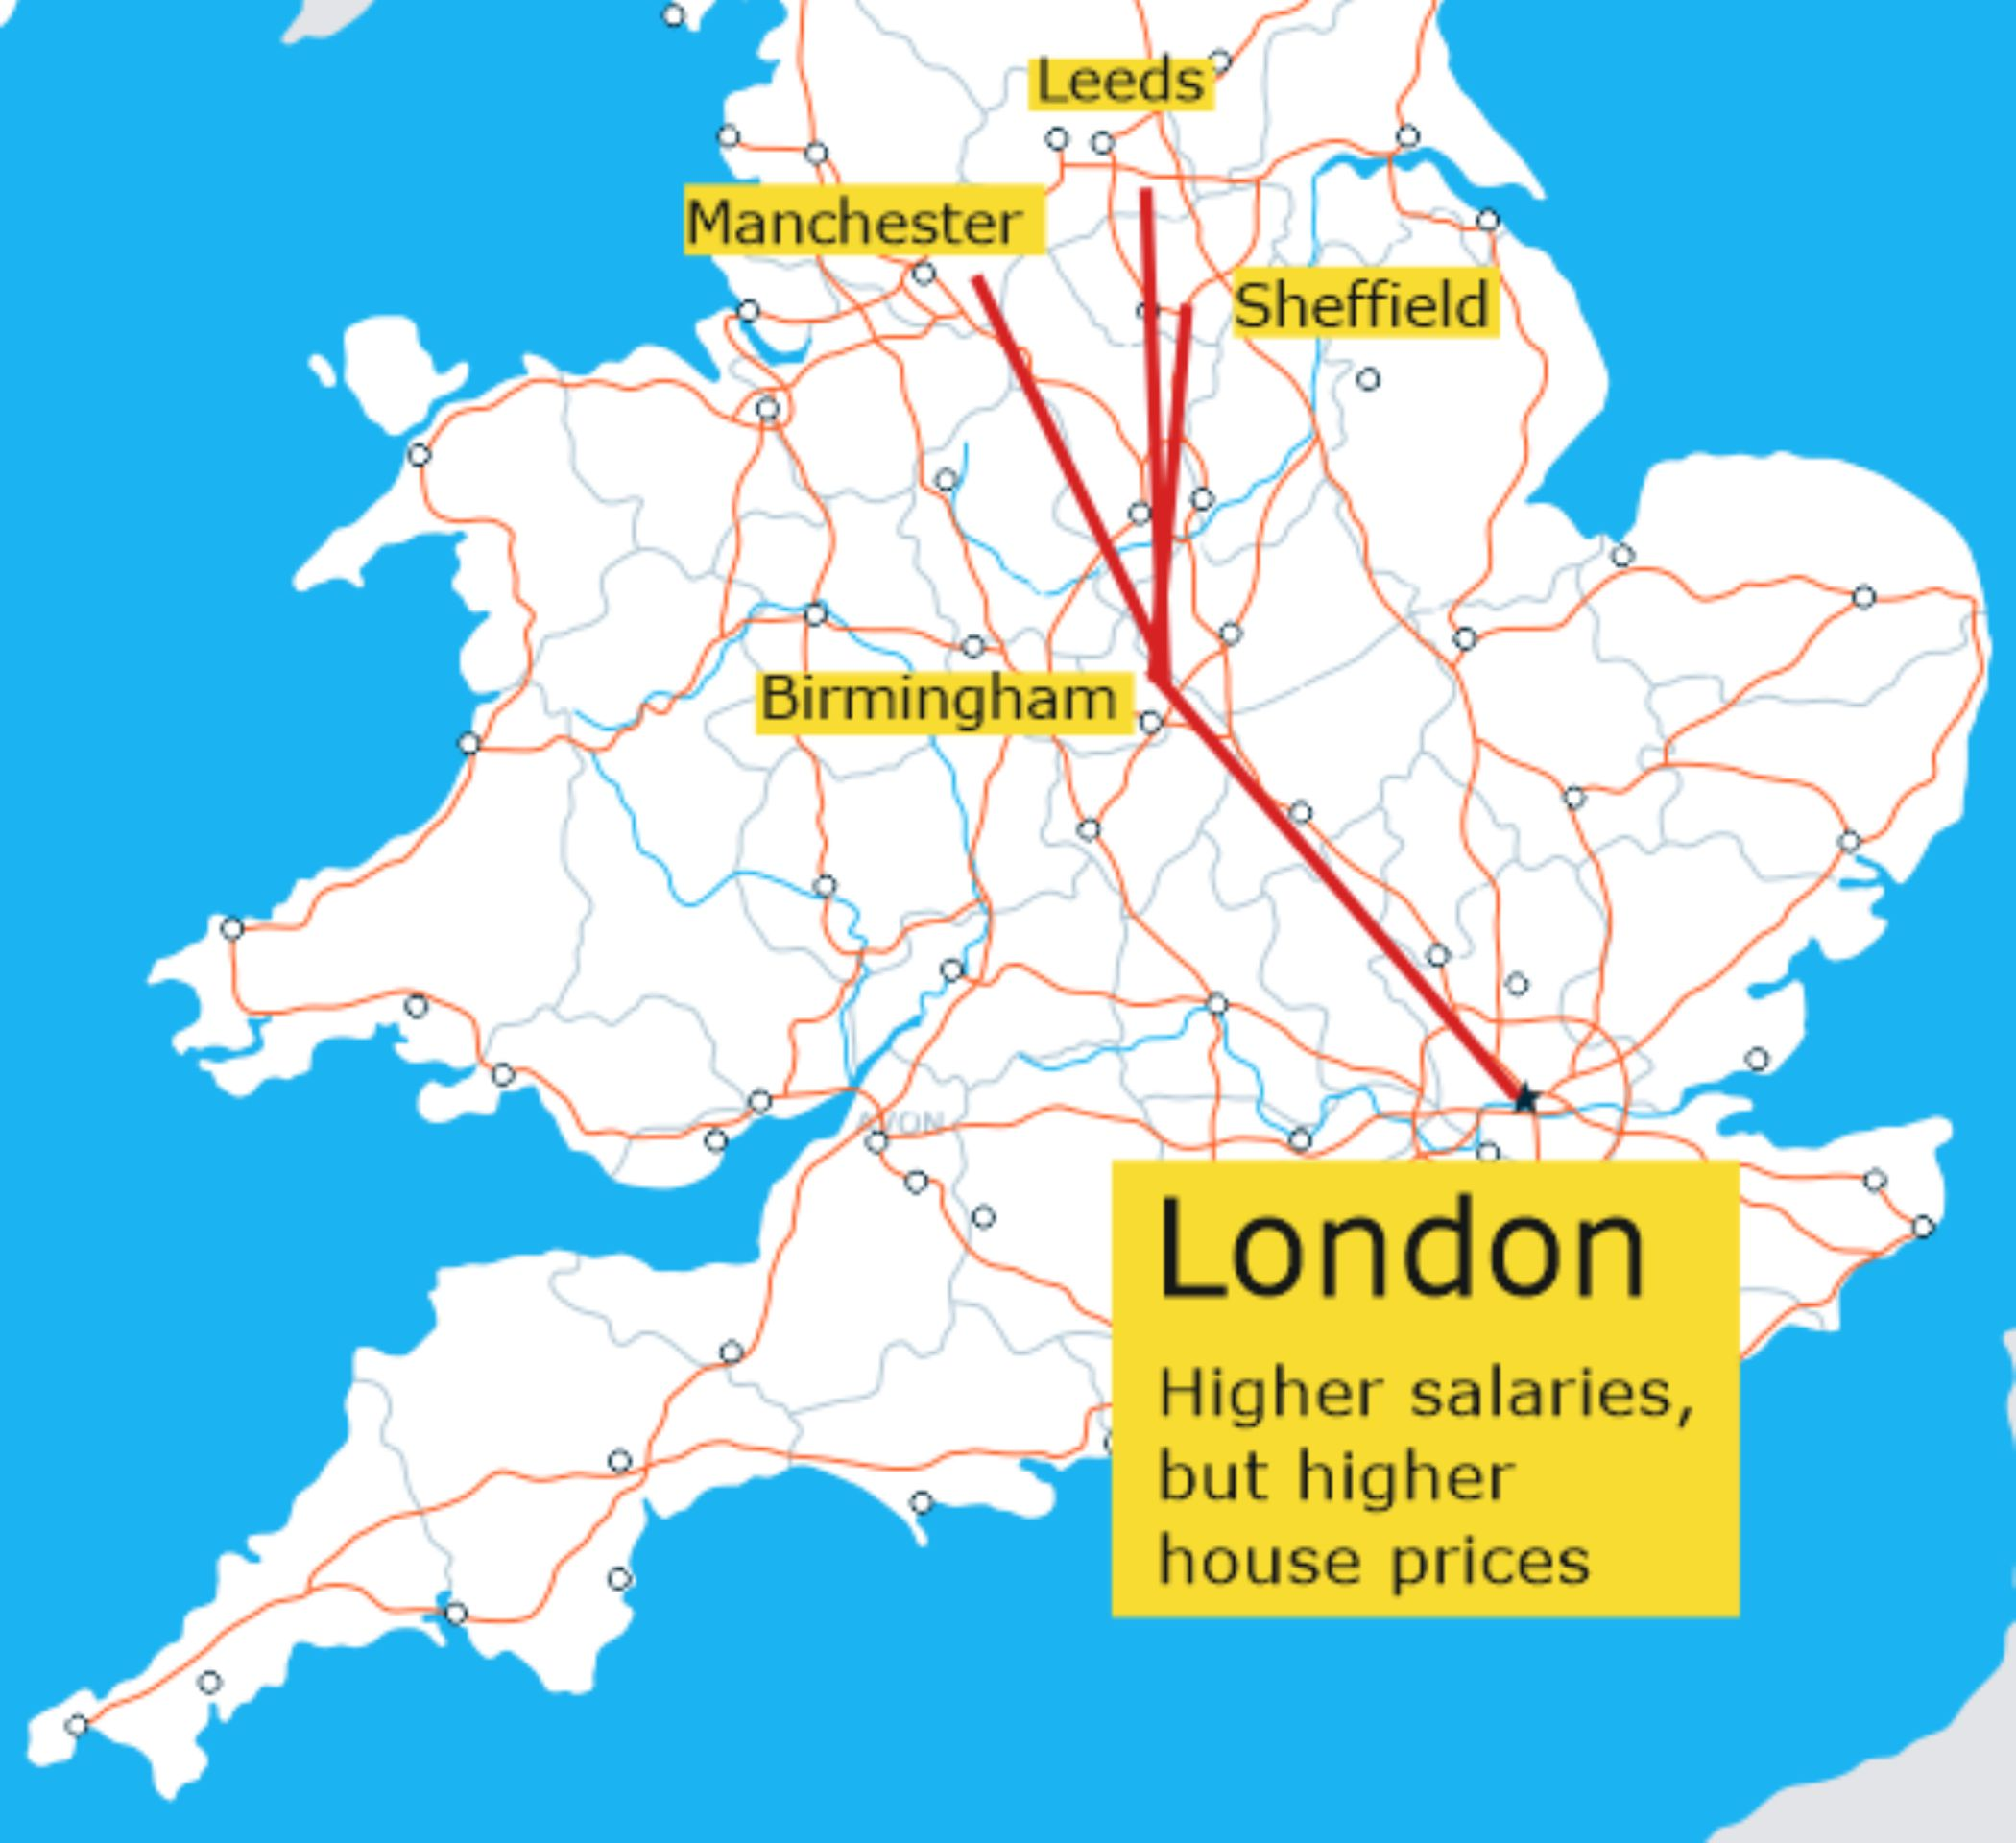 London Higher house prices